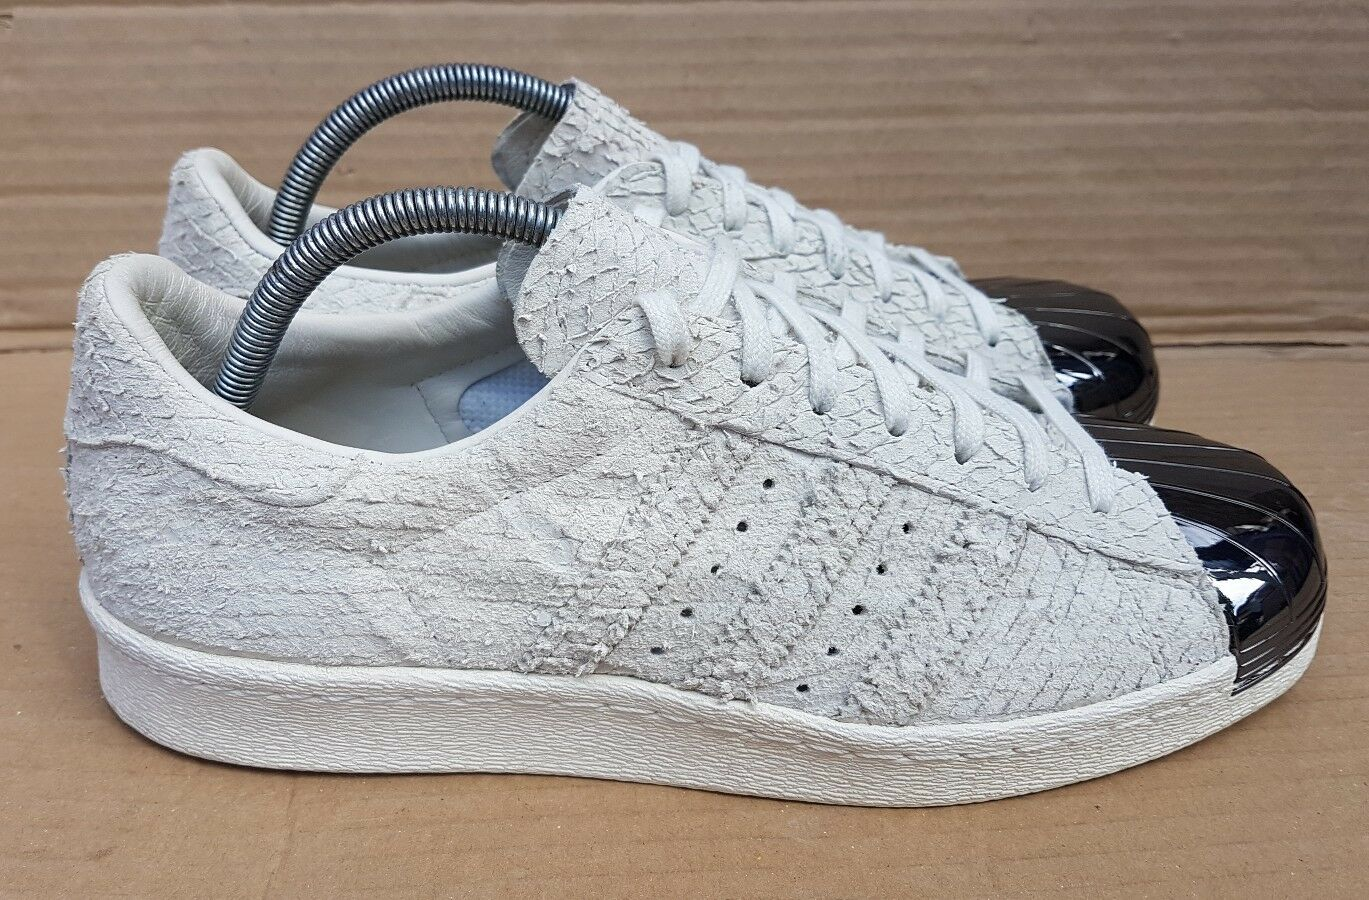 ADIDAS SUPERSTAR 80s TRAINERS REPTILE SIZE SKIN GREY METAL TOE SIZE REPTILE 6.5 UK RARE MINT 905b8f